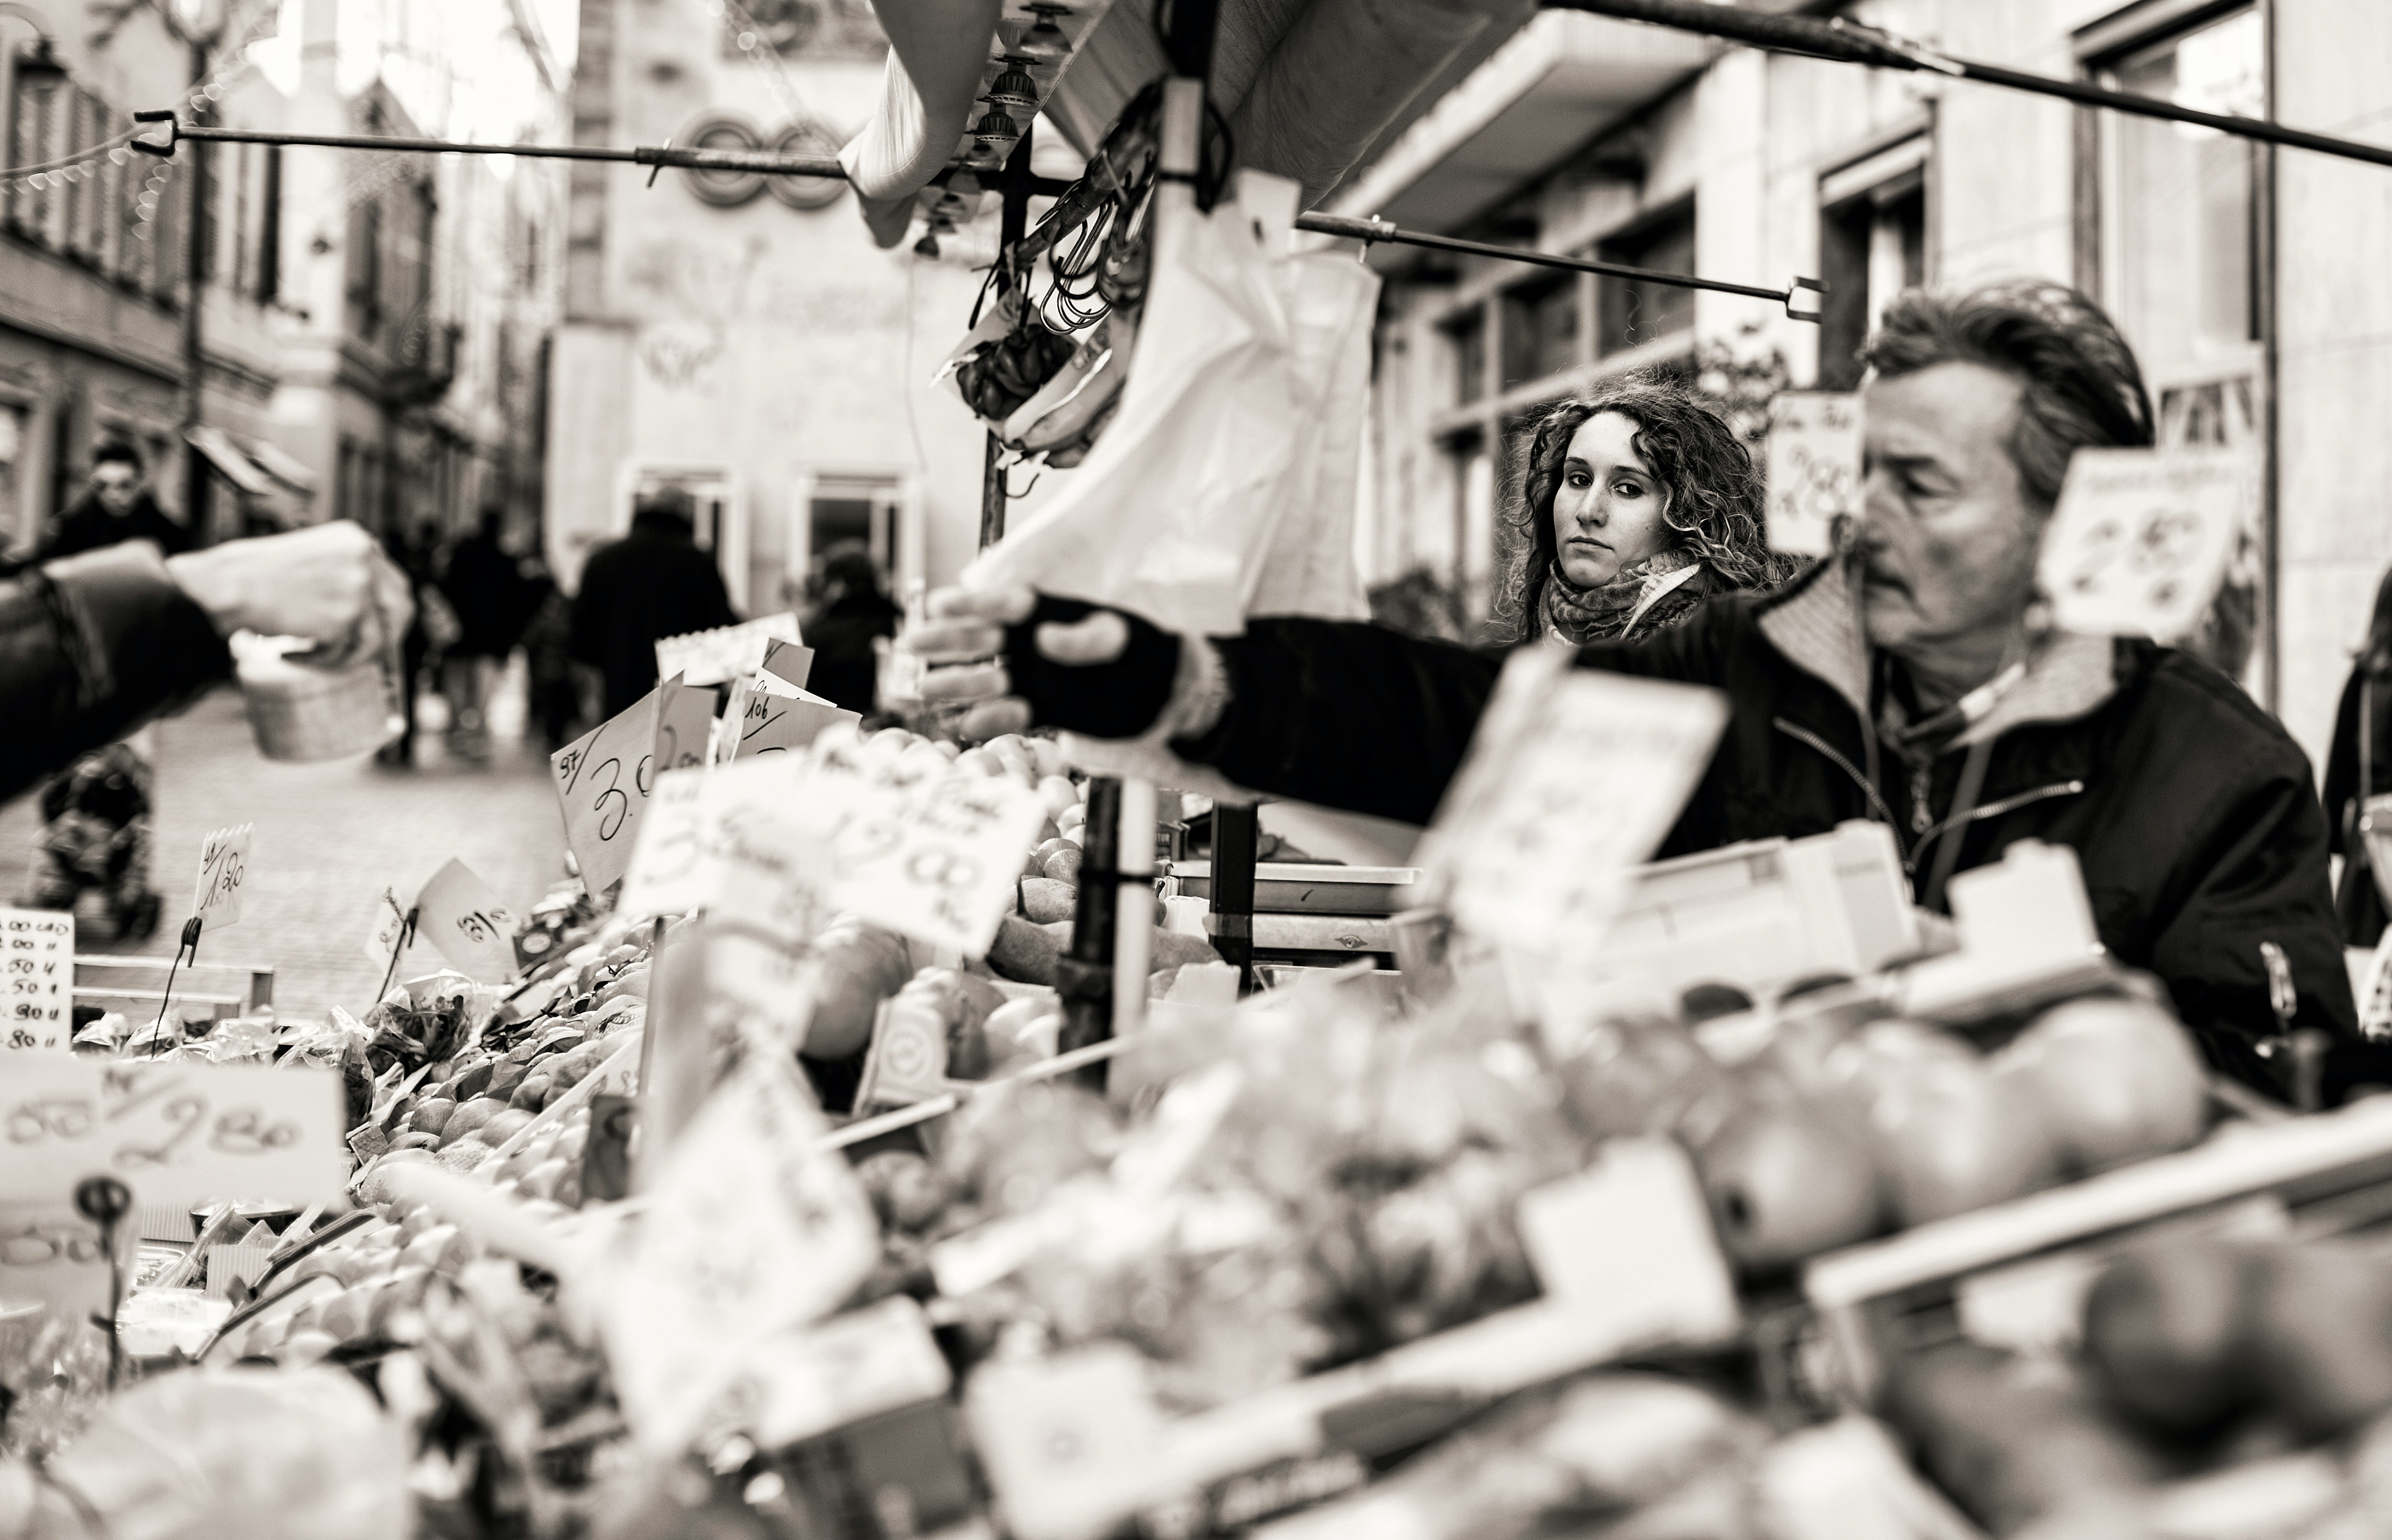 A black-and-white shot of people selecting produce at a market stall